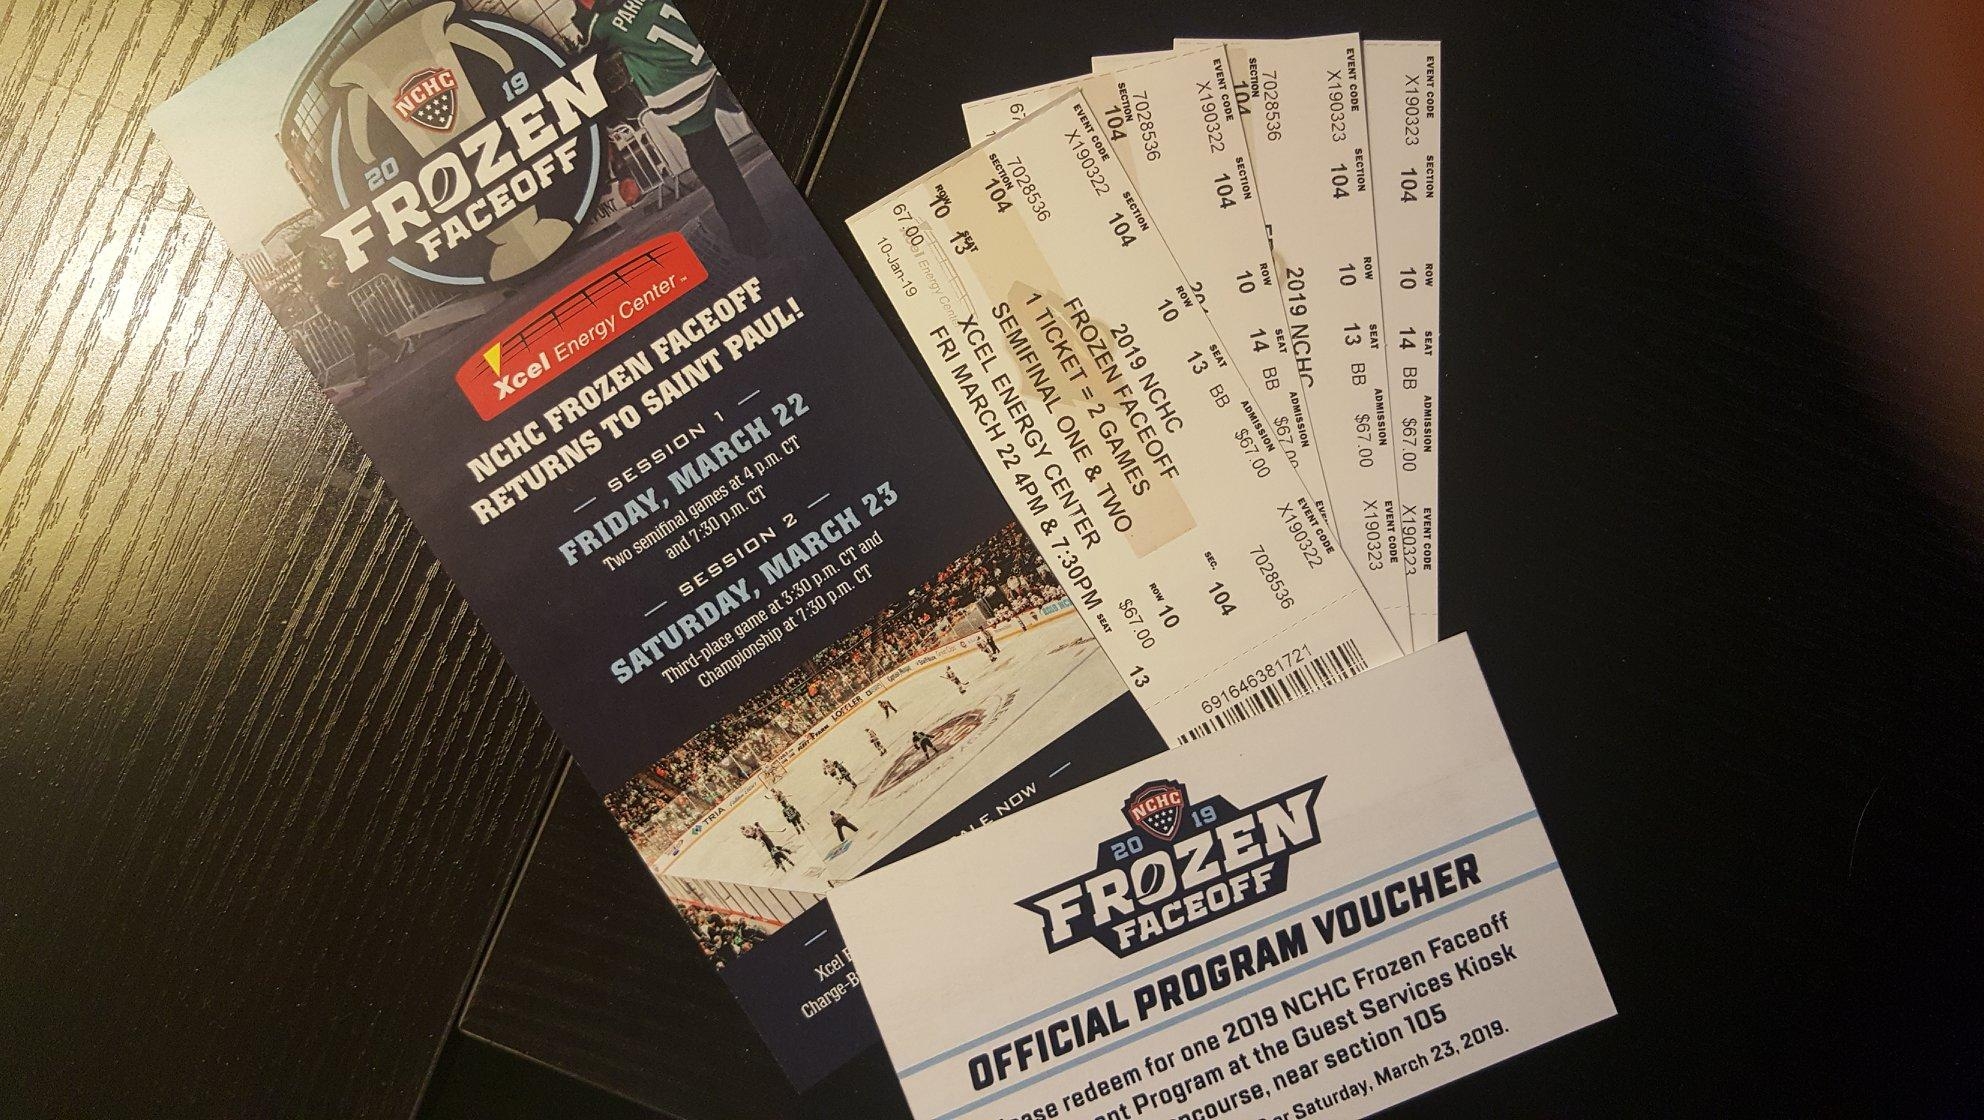 2 Frozen Faceoff tickets - all days - Tickets wanted / for